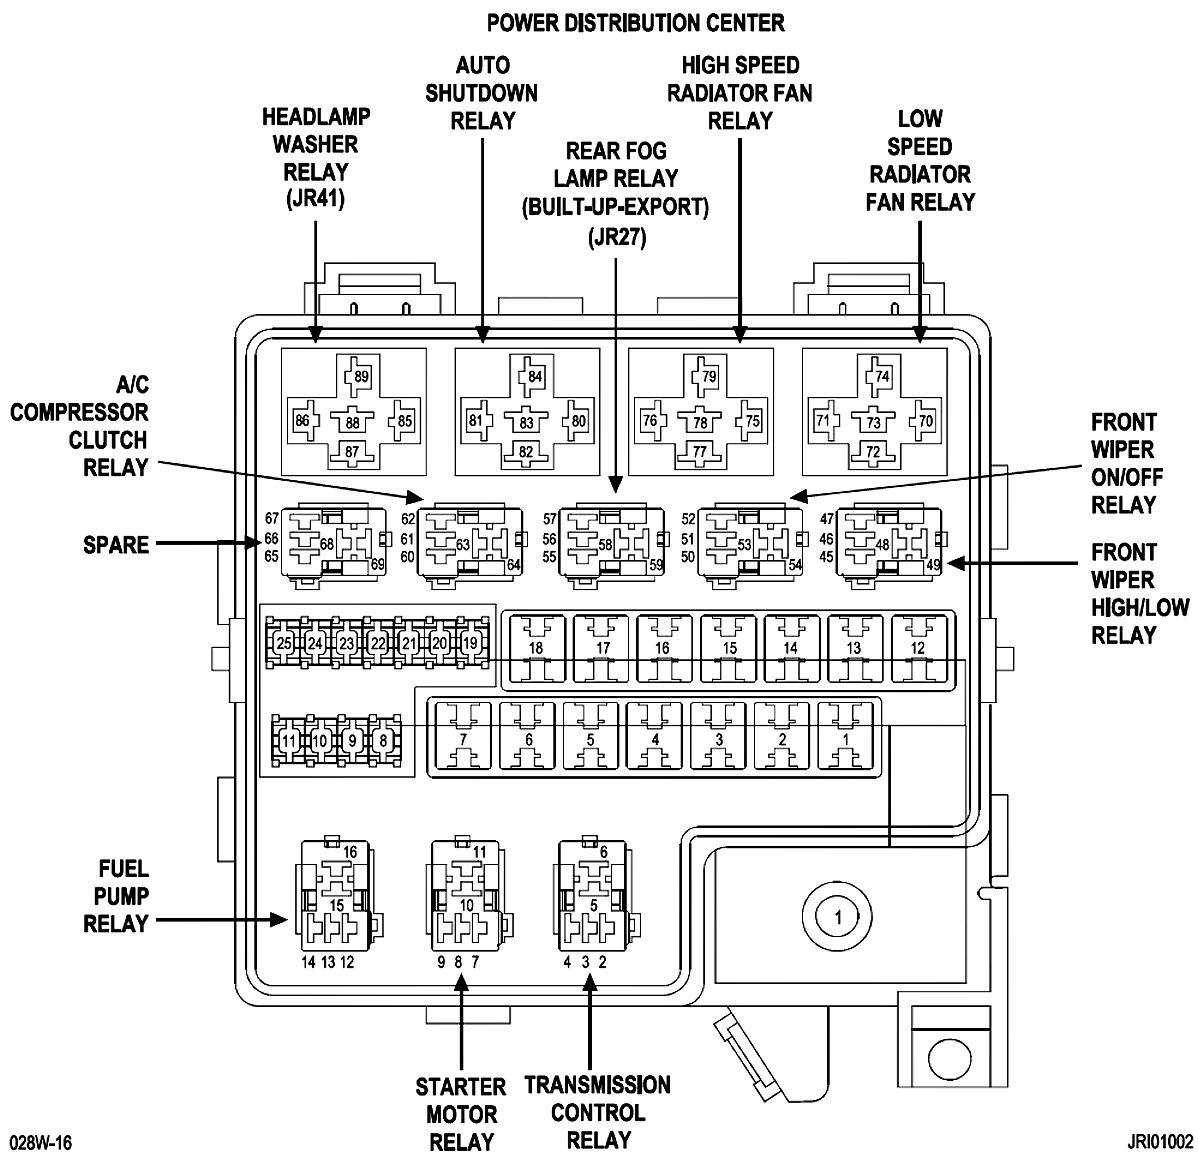 2004 Dodge Stratus Fuse Box Automotive Wiring Diagrams 1989 Dakota Diagram Image Details